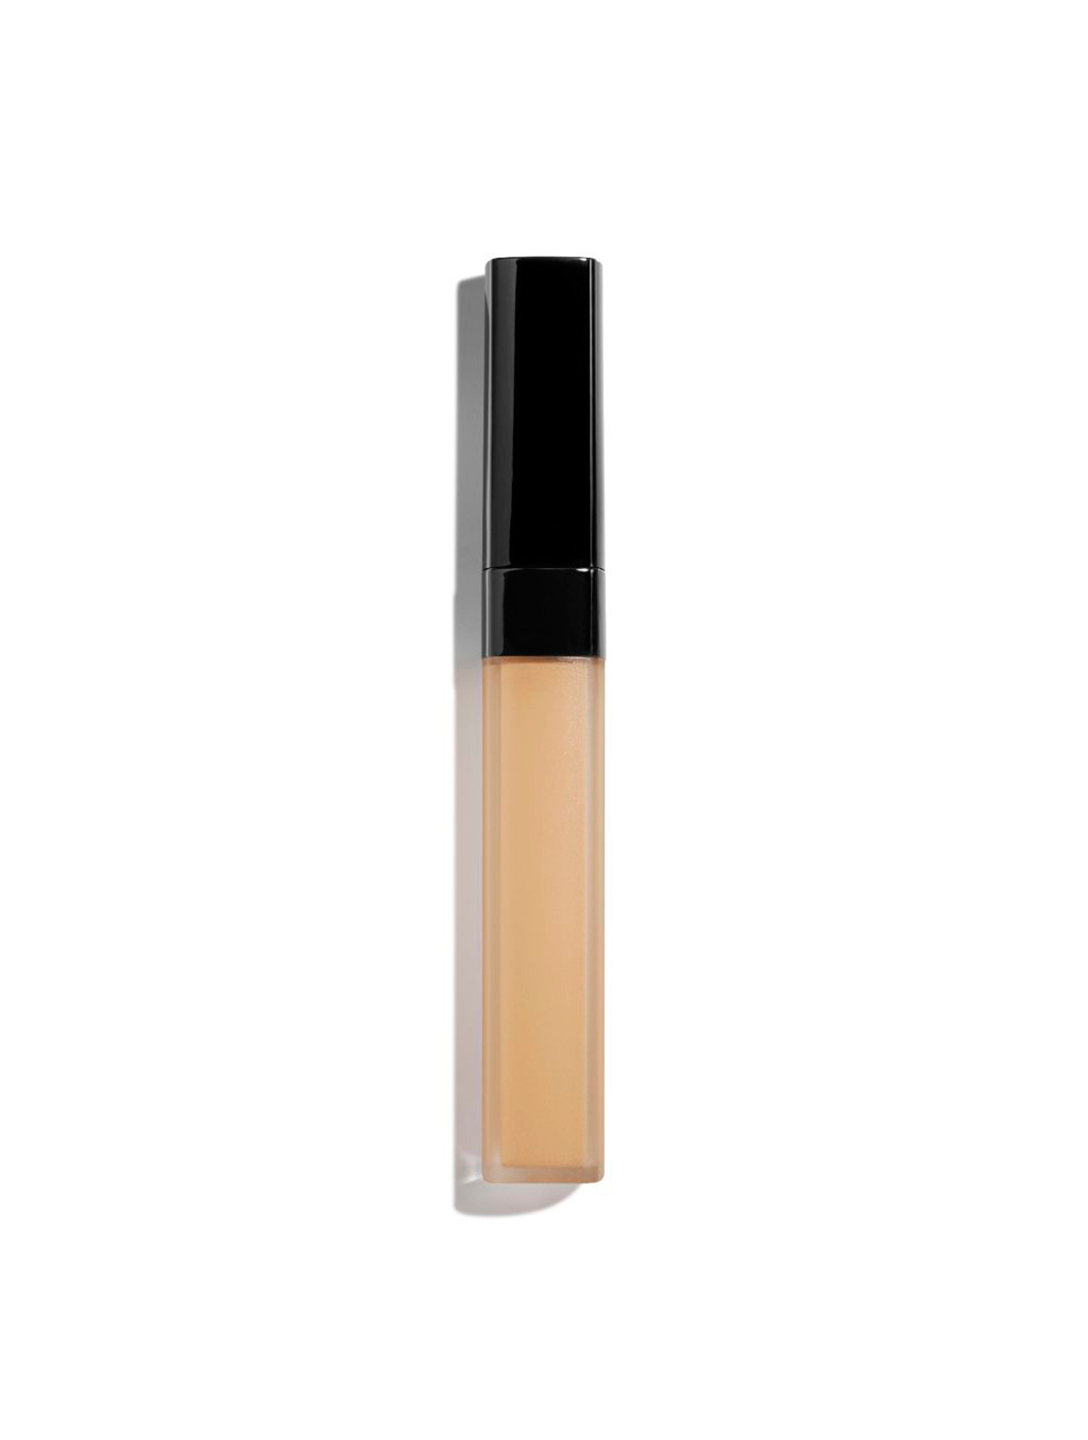 CHANEL Longwear Concealer CHANEL Brown